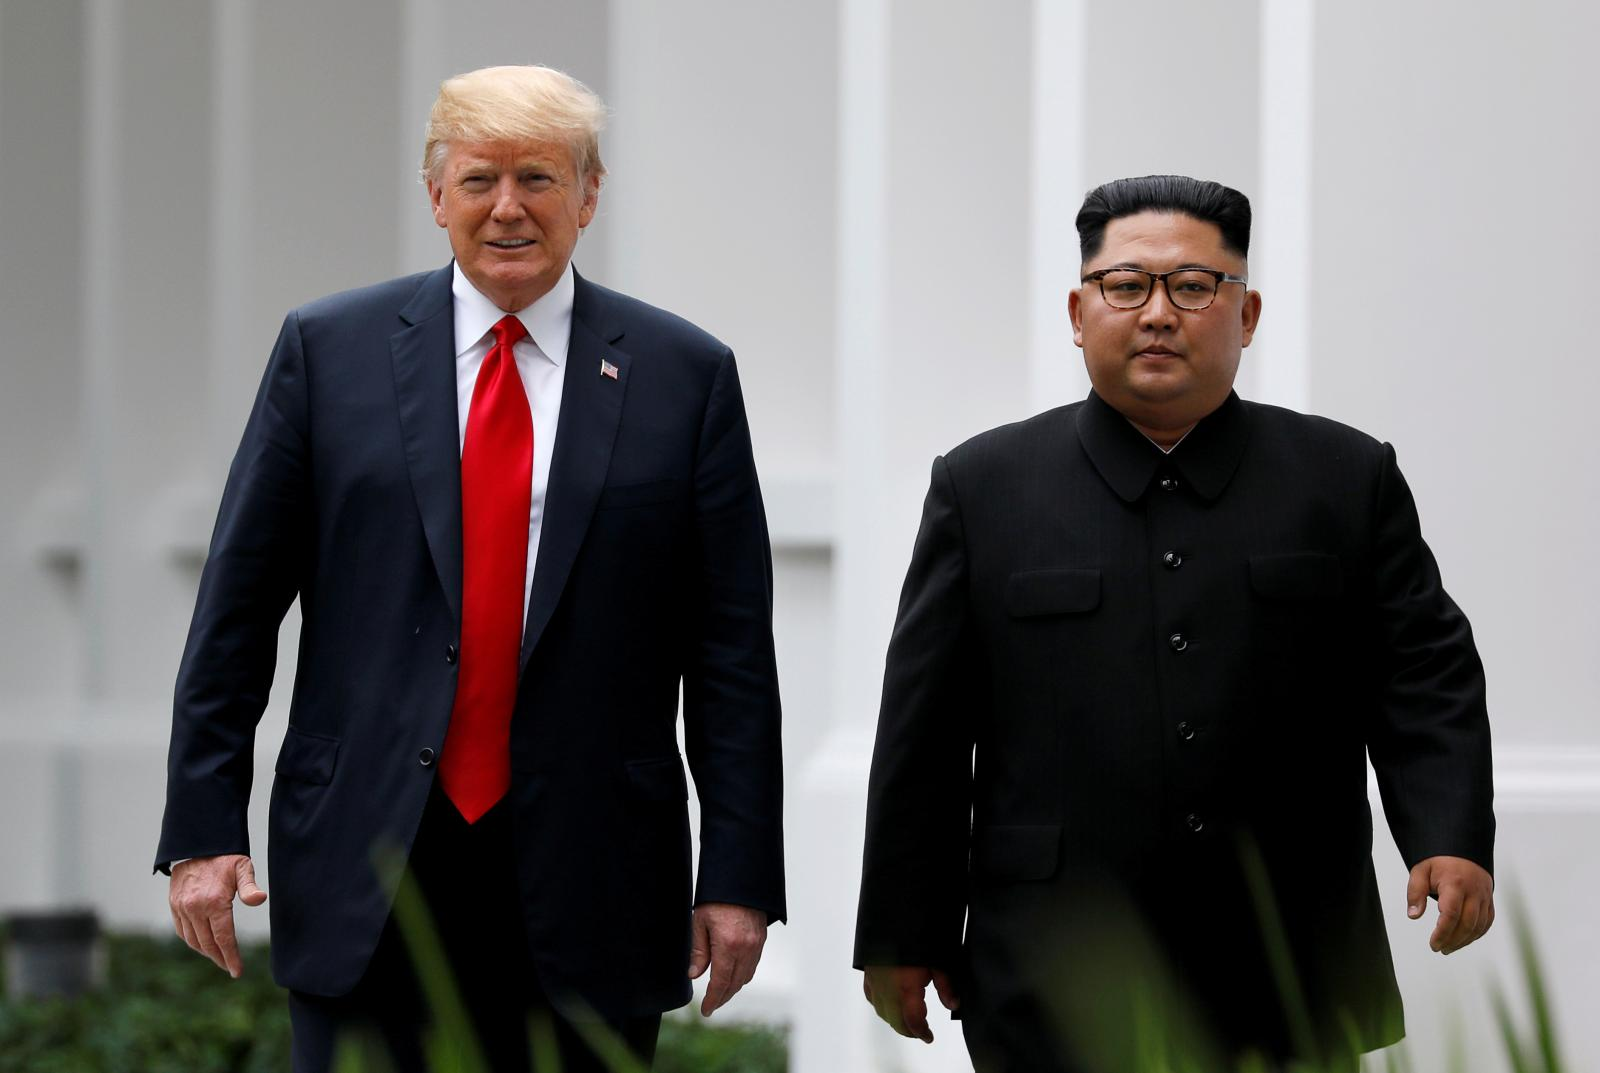 U.S. and North Korean officials met in Hanoi to discuss second Trump-Kim summit: South Korean newspaper